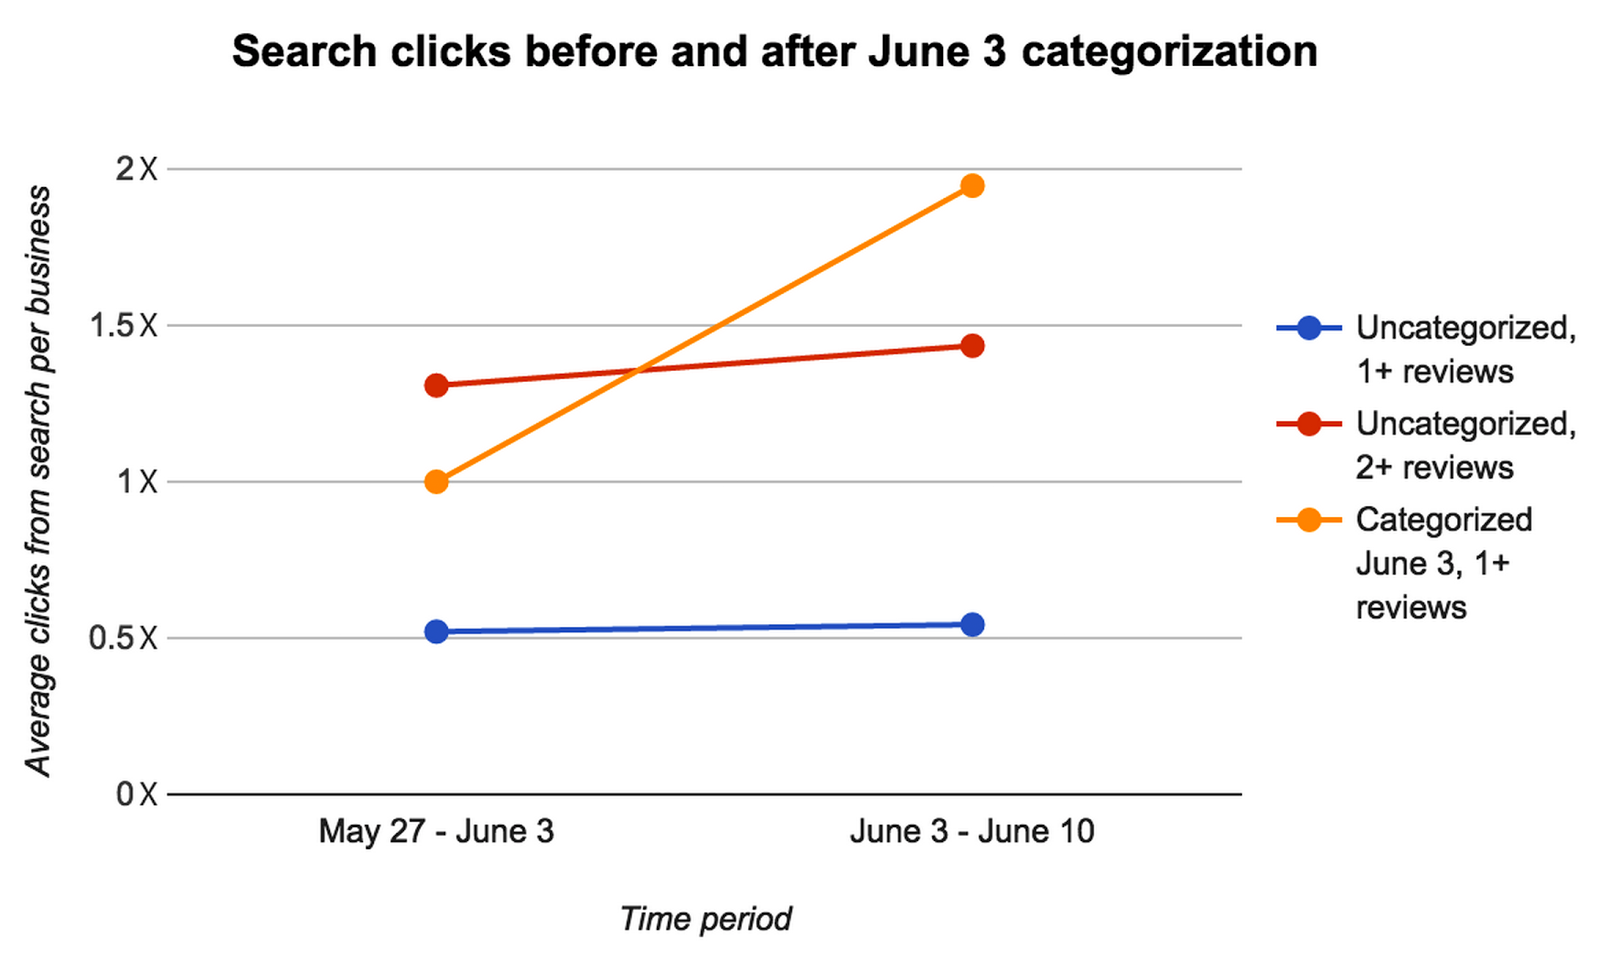 The orange line shows that after categorization, businesses received approximately twice as many clicks (on average). The blue and red control lines, representing businesses which were not categorized, show that this change is due to categorization, instead of extraneous factors, like increased overall traffic or faulty metrics. (We abstracted the exact number of clicks, since that is non-public information.)